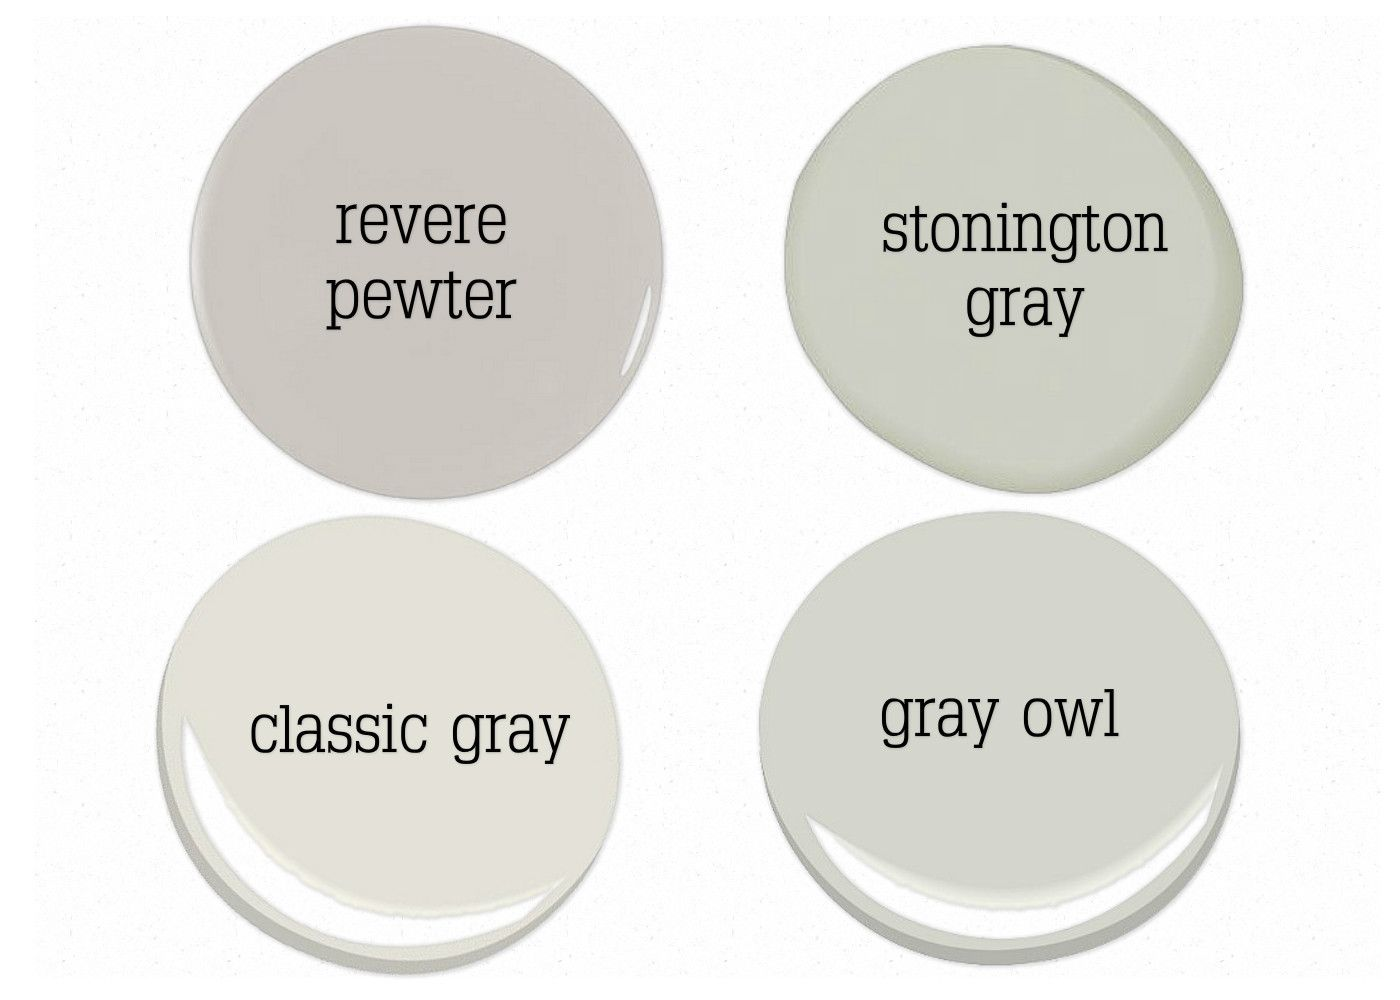 Benjamin Moore Gray Owl Paint ColorBenjamin Moore Gray Owl Paint Color   Stonington gray  Blue grey  . Great Neutral Paint Colors Benjamin Moore. Home Design Ideas